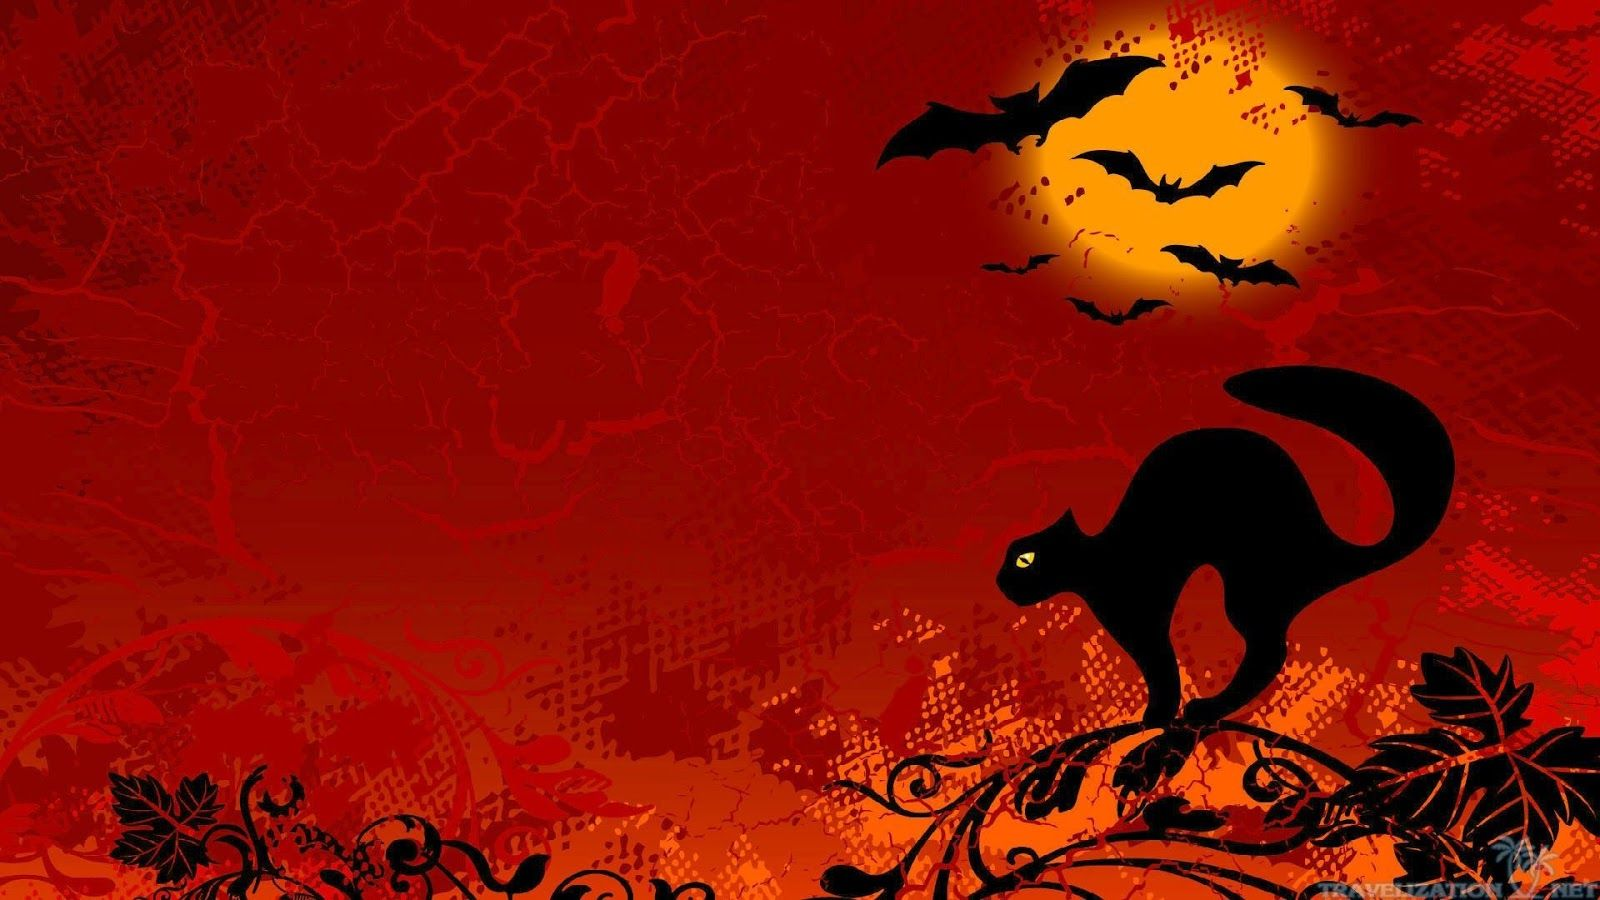 1080p Hd Halloween Cat Wallpaper High Quality Desktop Iphone And Android Background And Wallpaper Ani Halloween Cat Black Cat Halloween Halloween Graphics